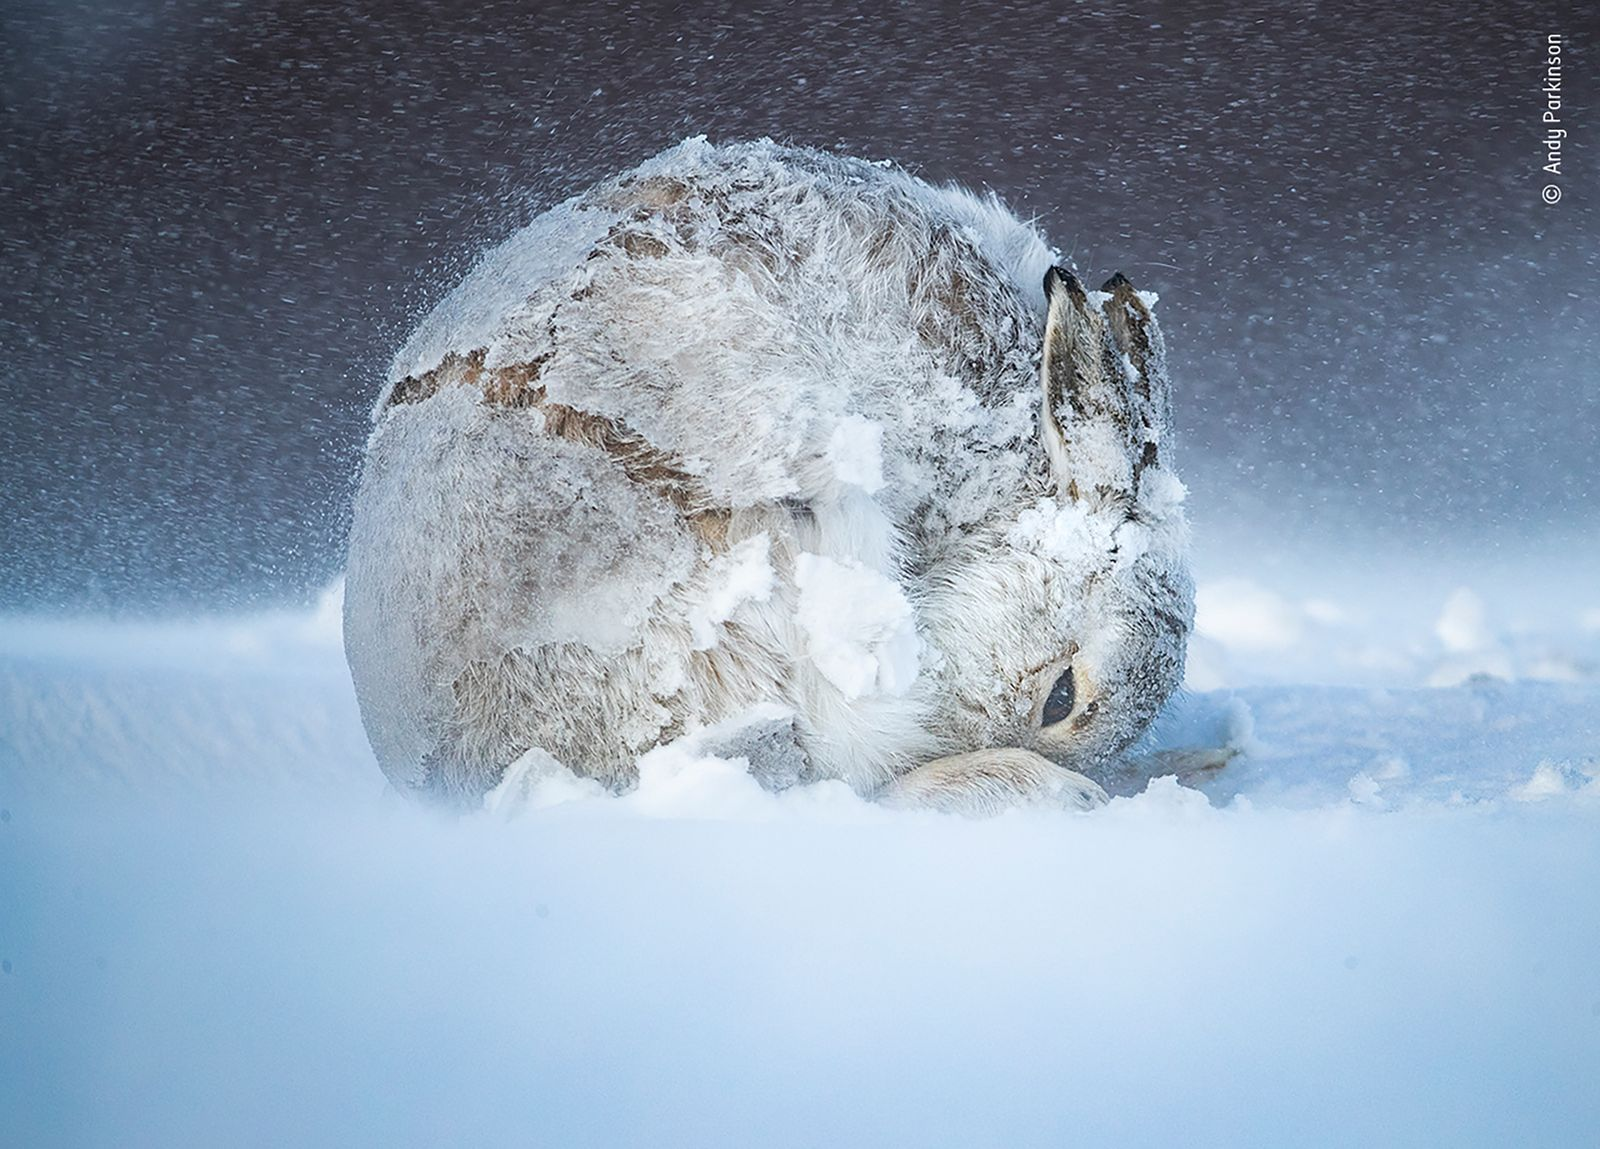 Hare ball by Andy Parkinson, UK